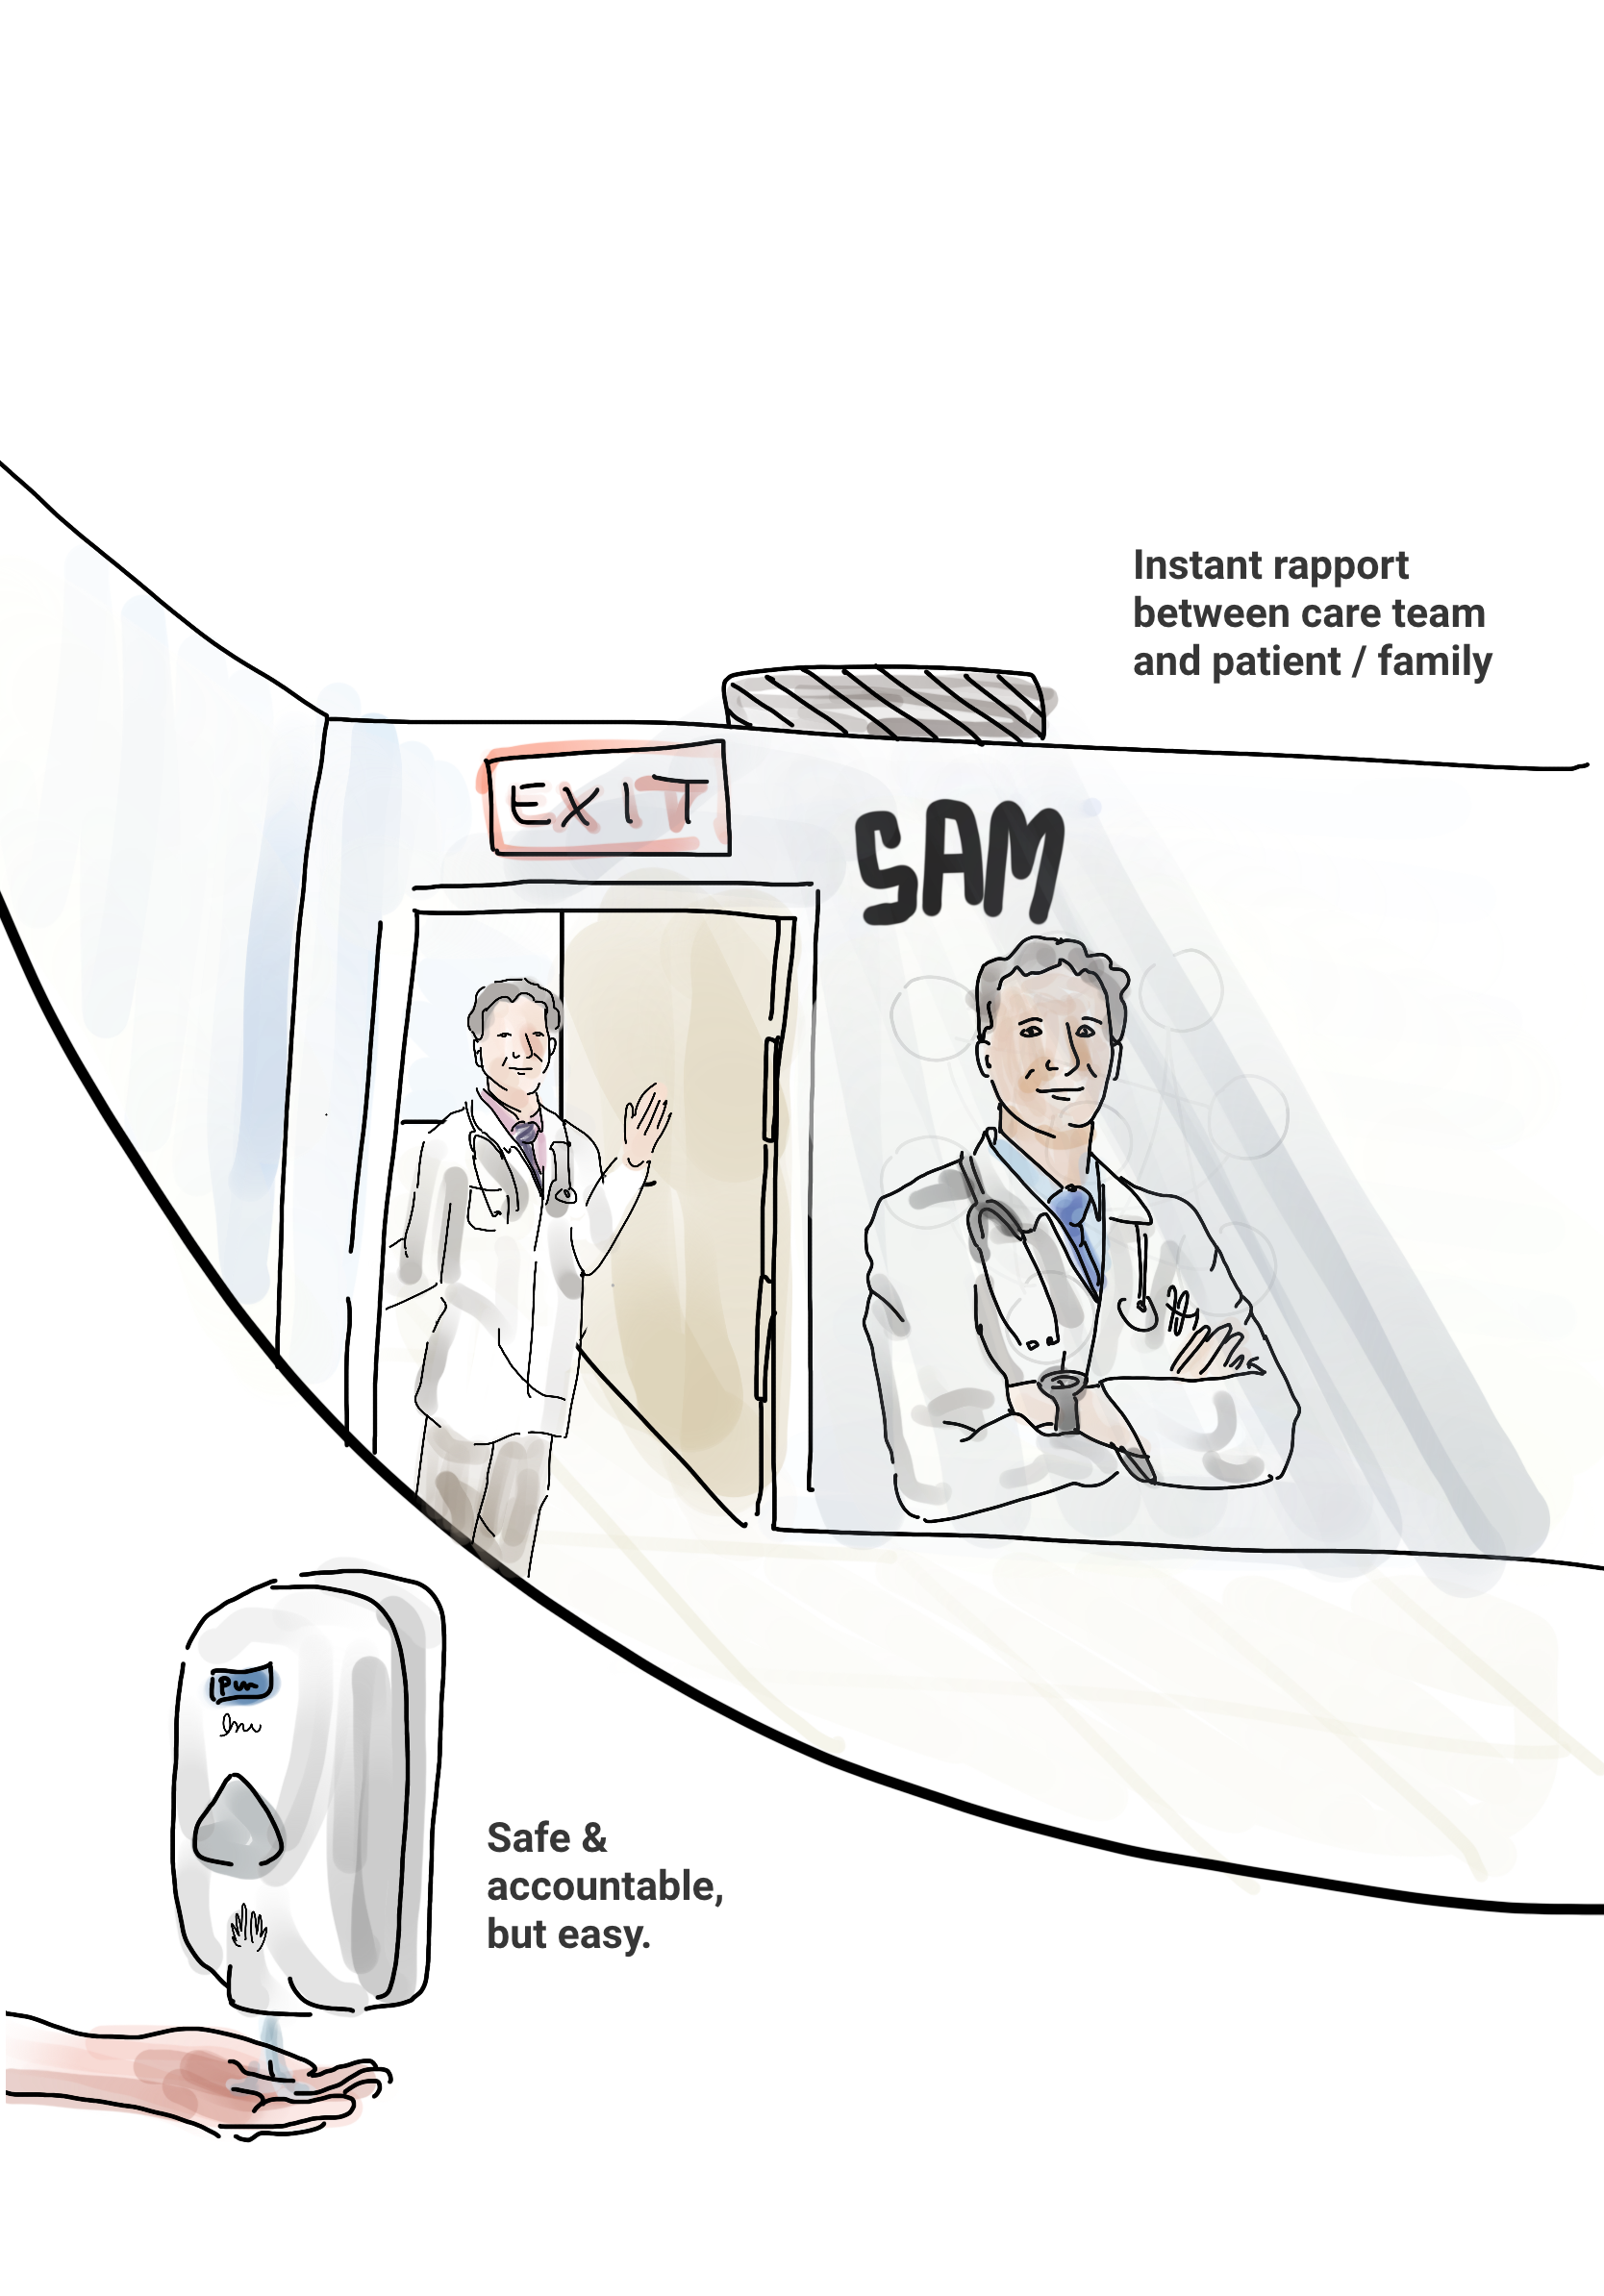 Drawing of a doctor entering a patient room. When they use the hand sanitizer dispenser, their name is projected on the wall.